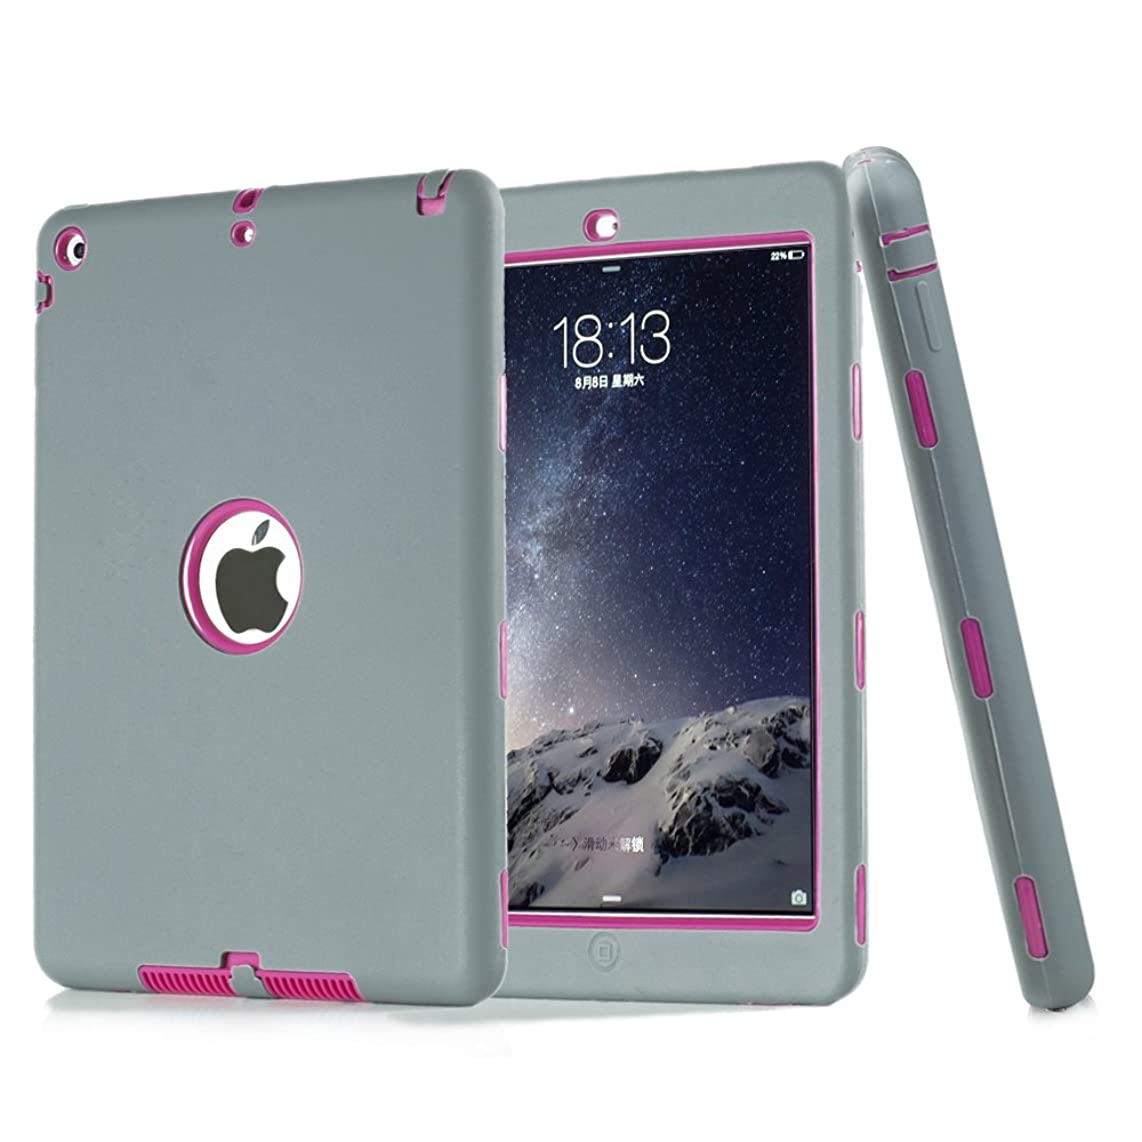 iPad Air Case, iPad 5 Case,UZER Heavy Duty Shockproof Anti-Slip Silicone High Impact Resistant Hybrid Three Layer Hard PC+Silicone Armor Protective Case Cover for iPad Air/iPAd 5 2013 Old Model